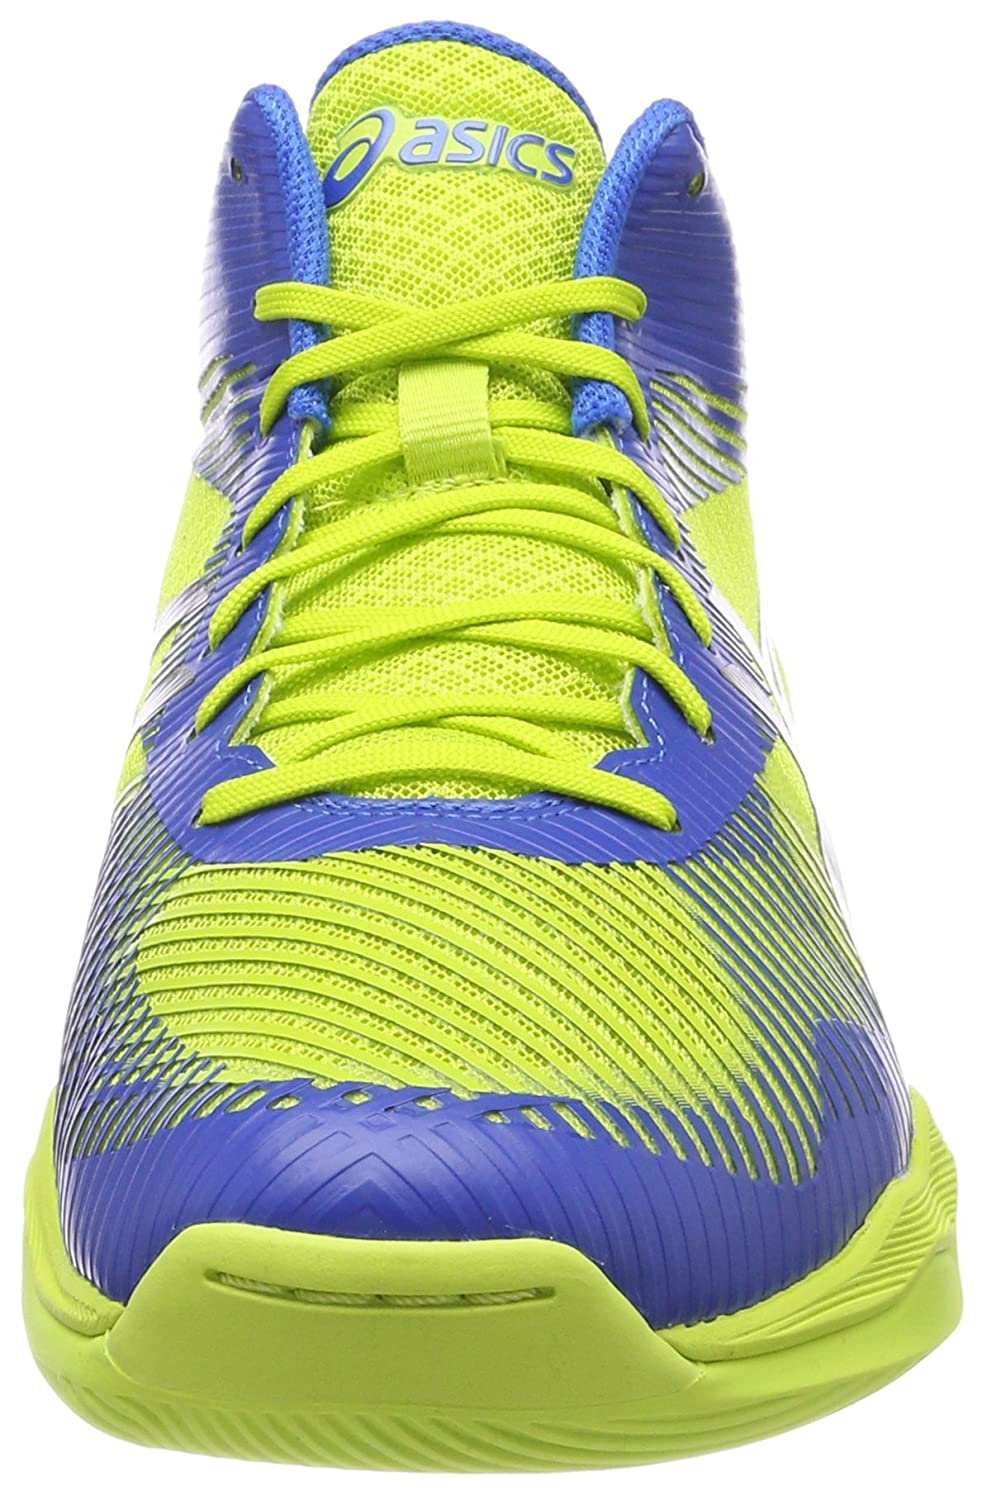 3f9fc9b872047 Men s B700n Volley Volleyball Elite Ff Asics Shoes Mt cjLRSq4A53